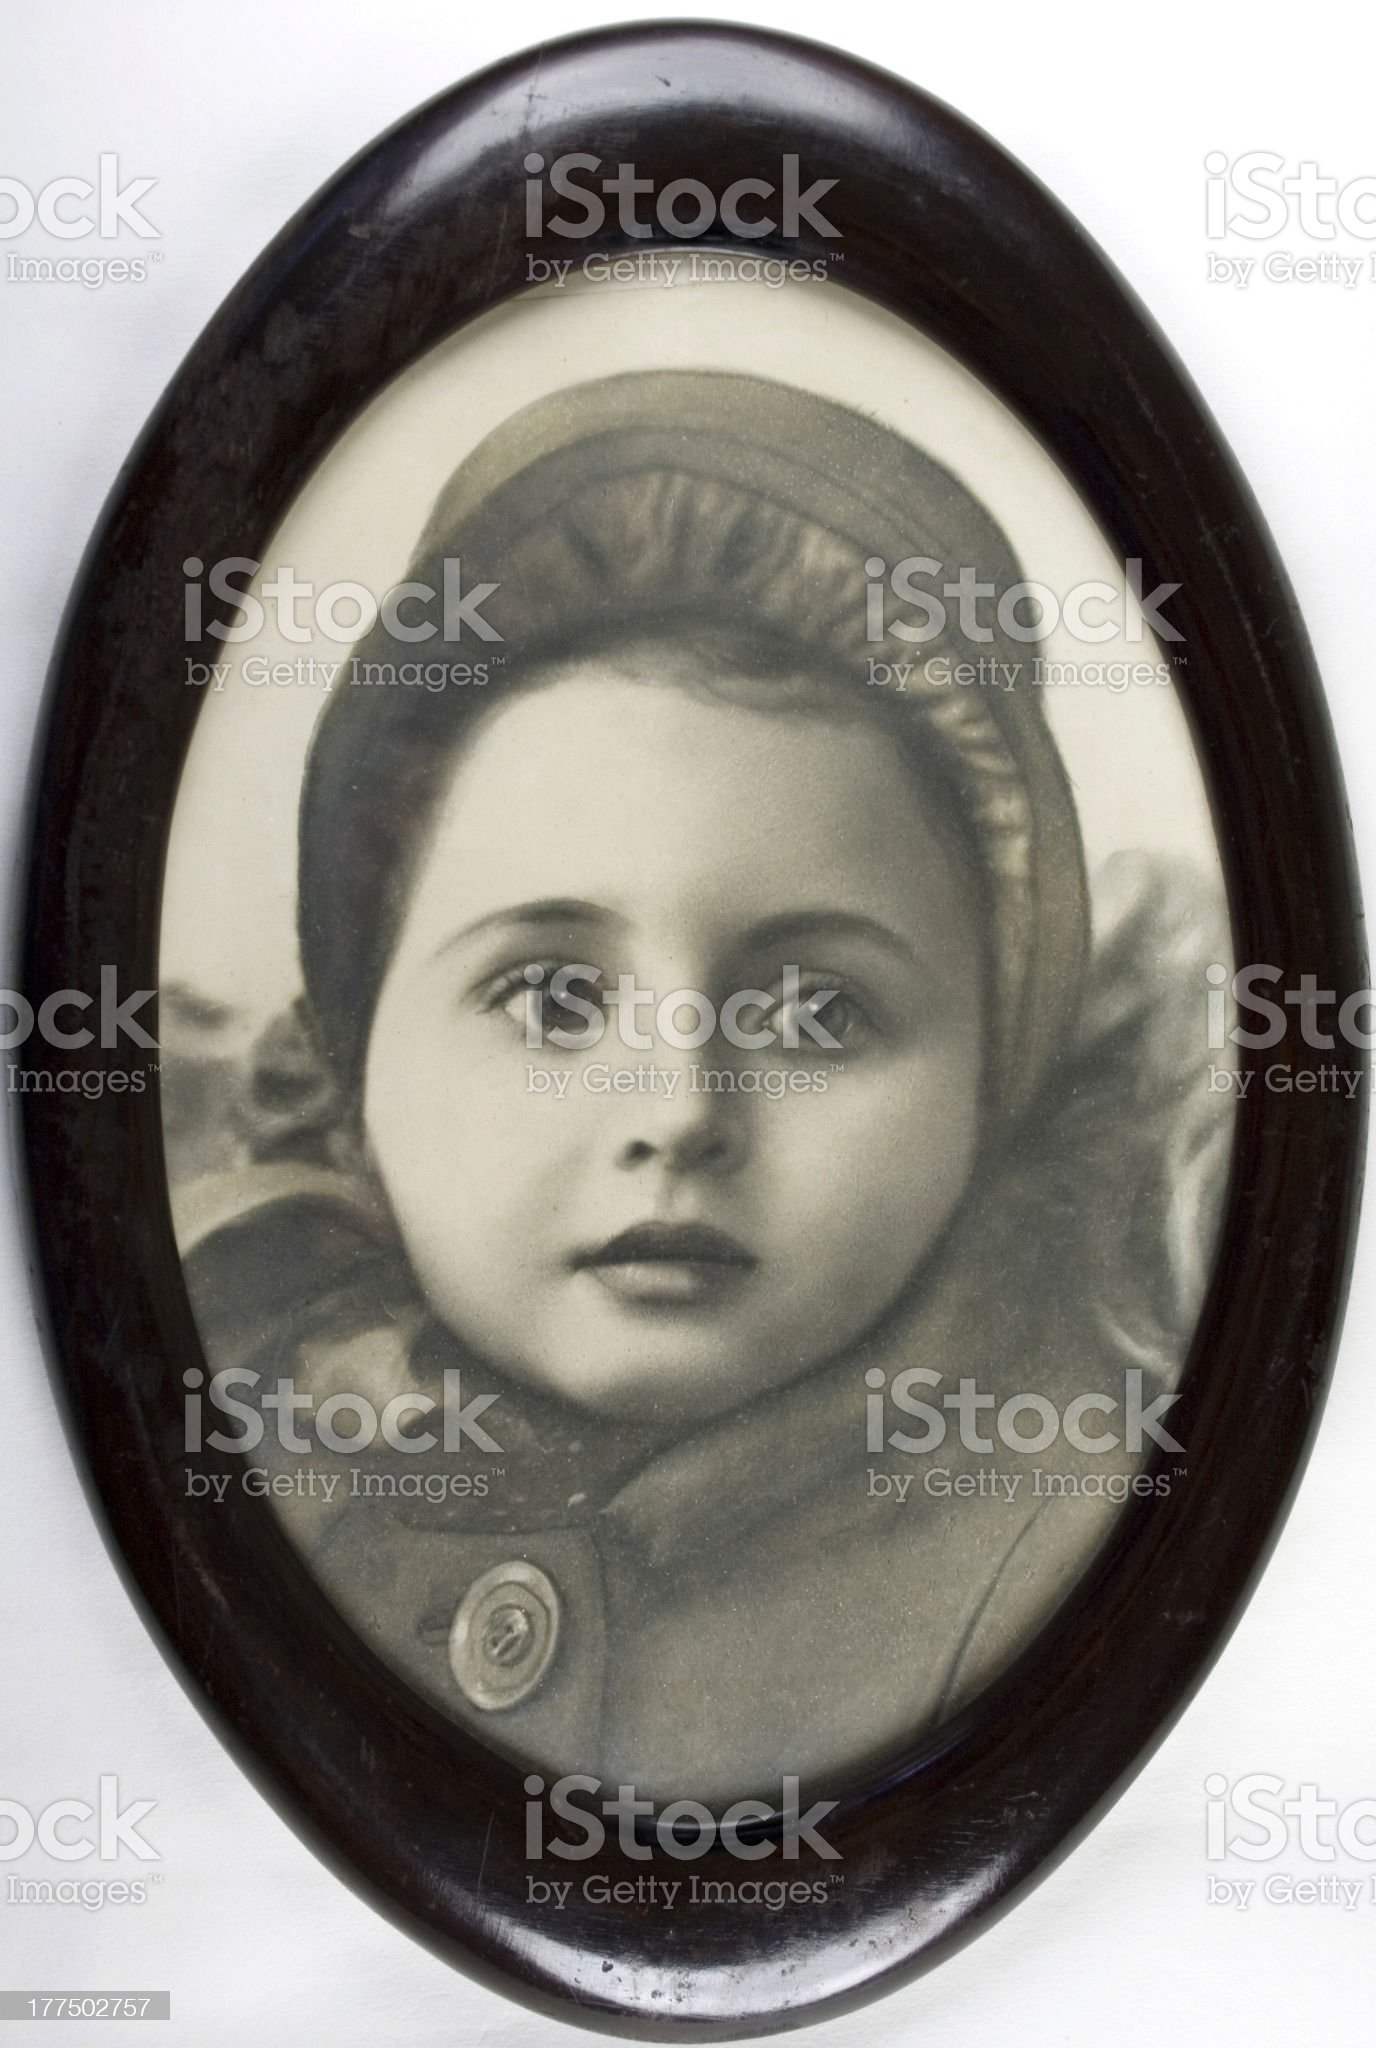 Vintage photo of girl in hat royalty-free stock photo